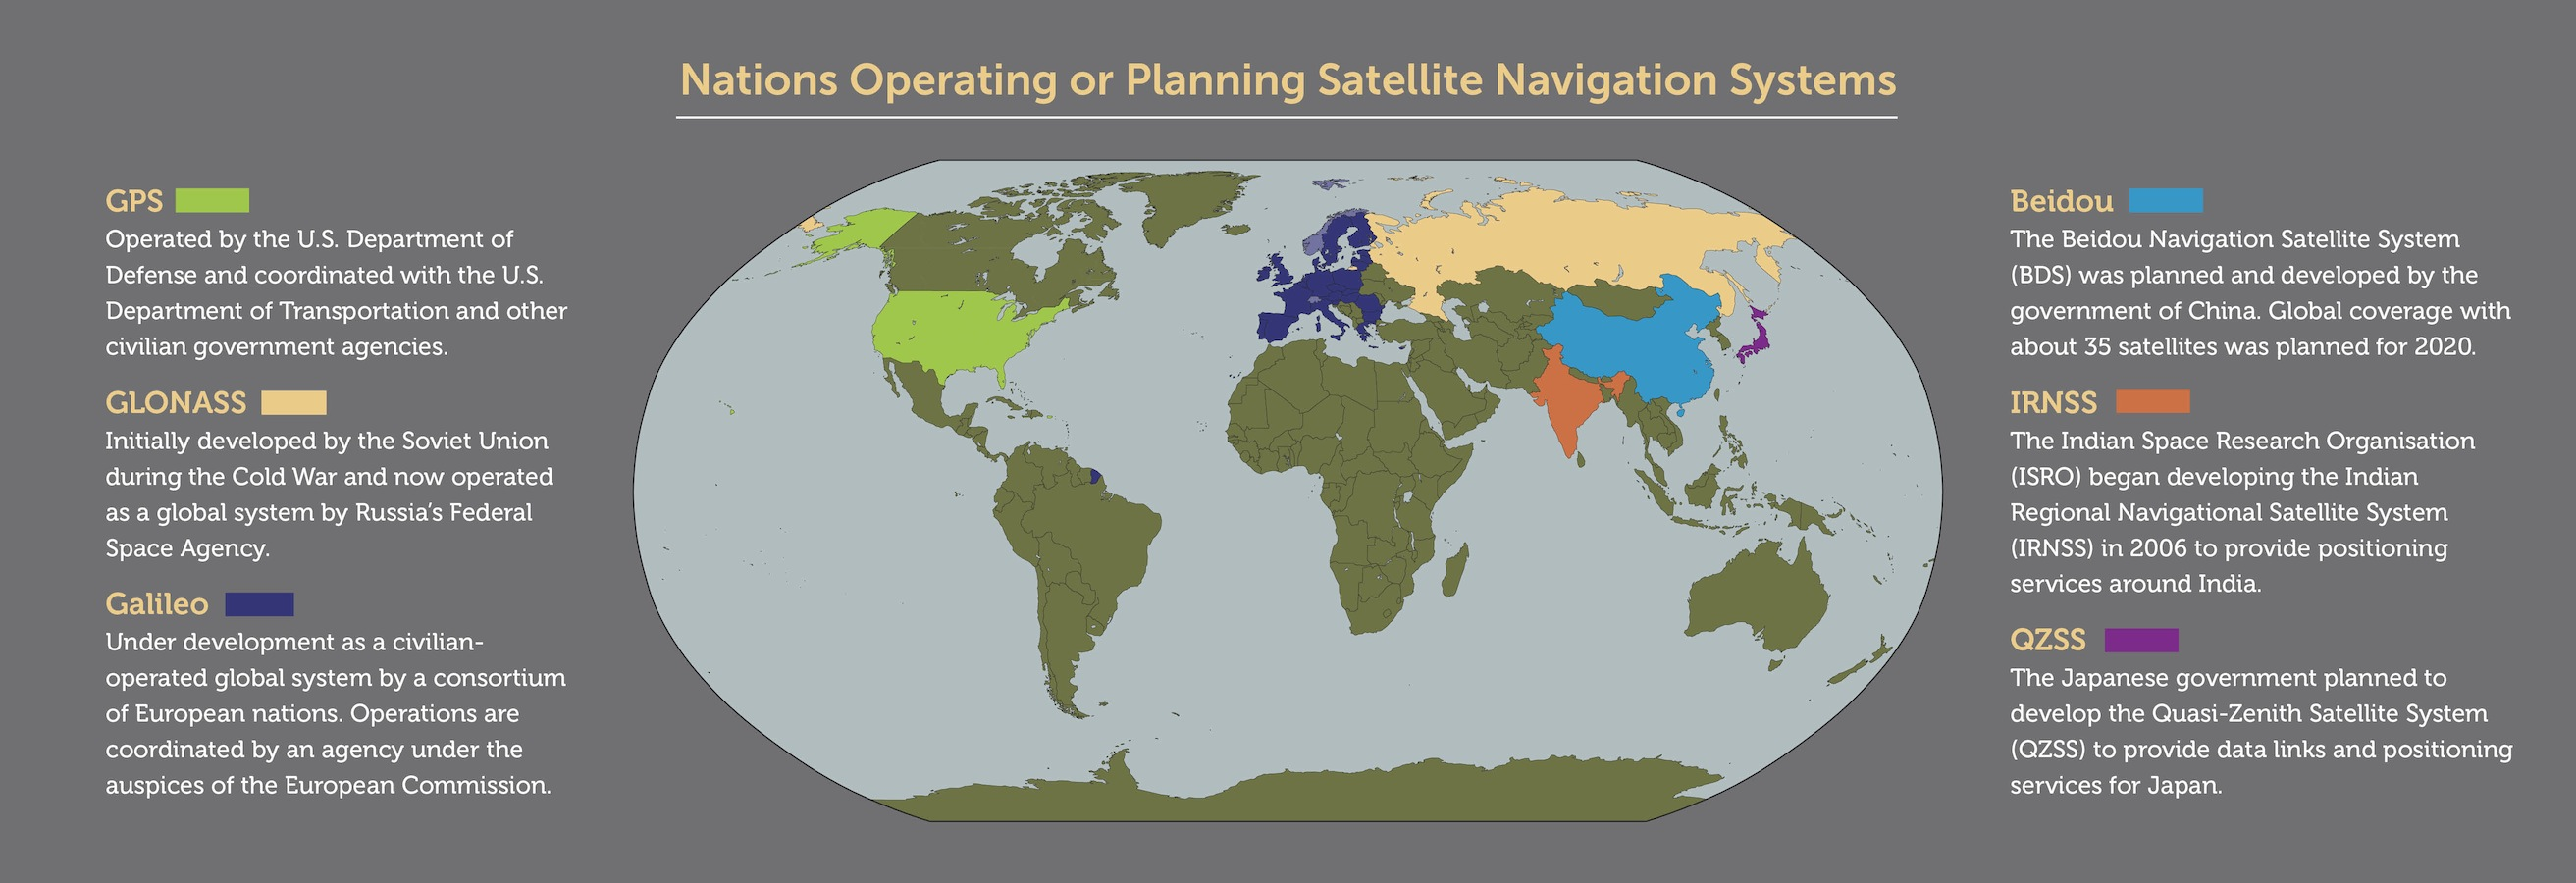 Map Of Satellite Systems Time And Navigation - World satellite gps map